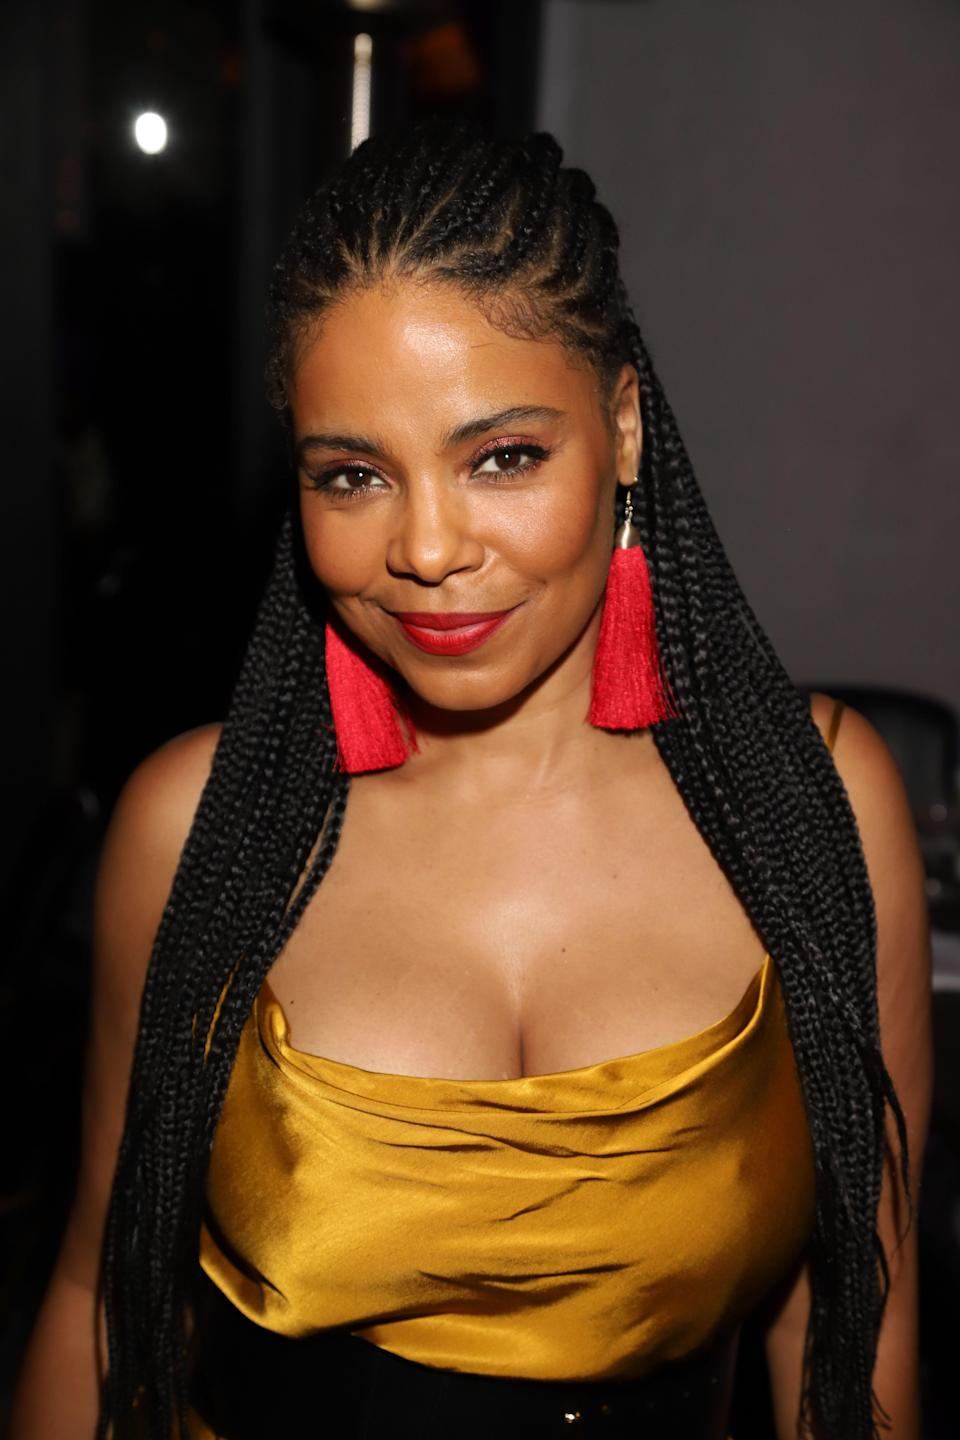 """This chic look toes the line just between a <a href=""""https://www.glamour.com/gallery/fulani-braids-hairstyle-ideas?mbid=synd_yahoo_rss"""" rel=""""nofollow noopener"""" target=""""_blank"""" data-ylk=""""slk:Fulani braid"""" class=""""link rapid-noclick-resp"""">Fulani braid</a> and goddess braid. It's a good in-between size if you're looking to test the waters into cornrows or micro braids."""